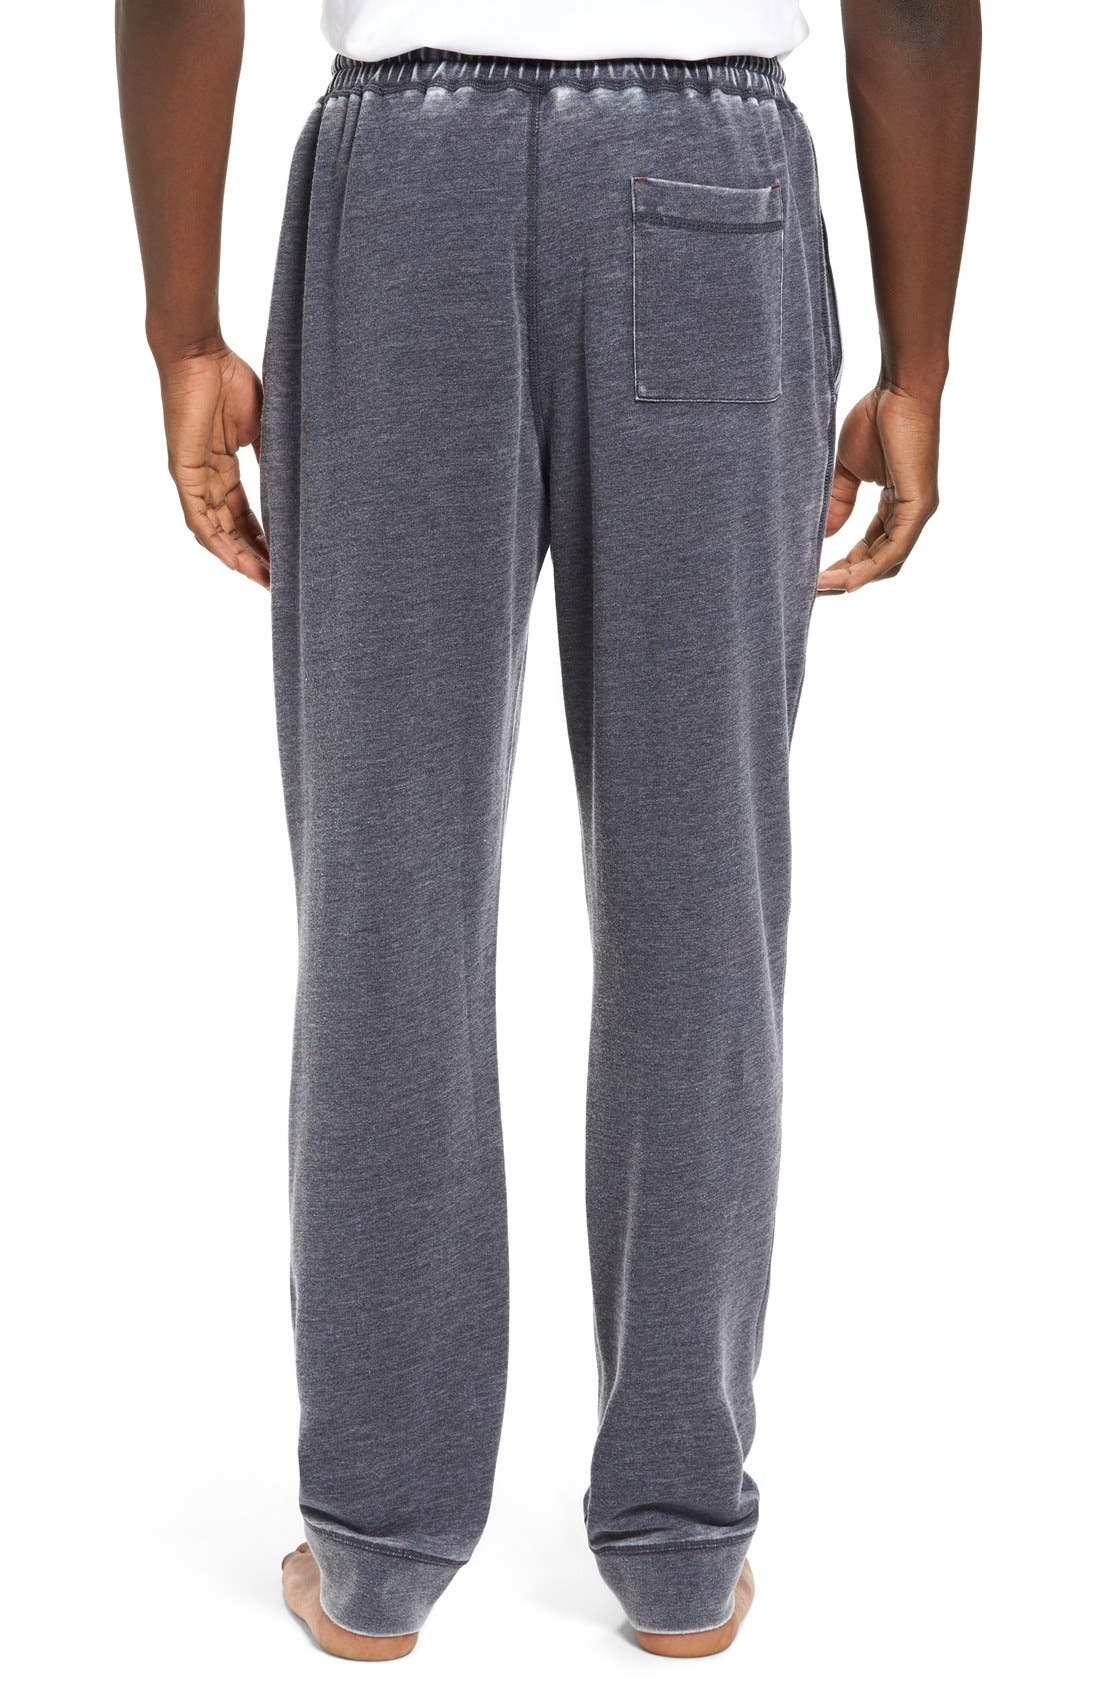 Alternate Image 2  - Daniel Buchler Washed Cotton Blend Terry Lounge Pants